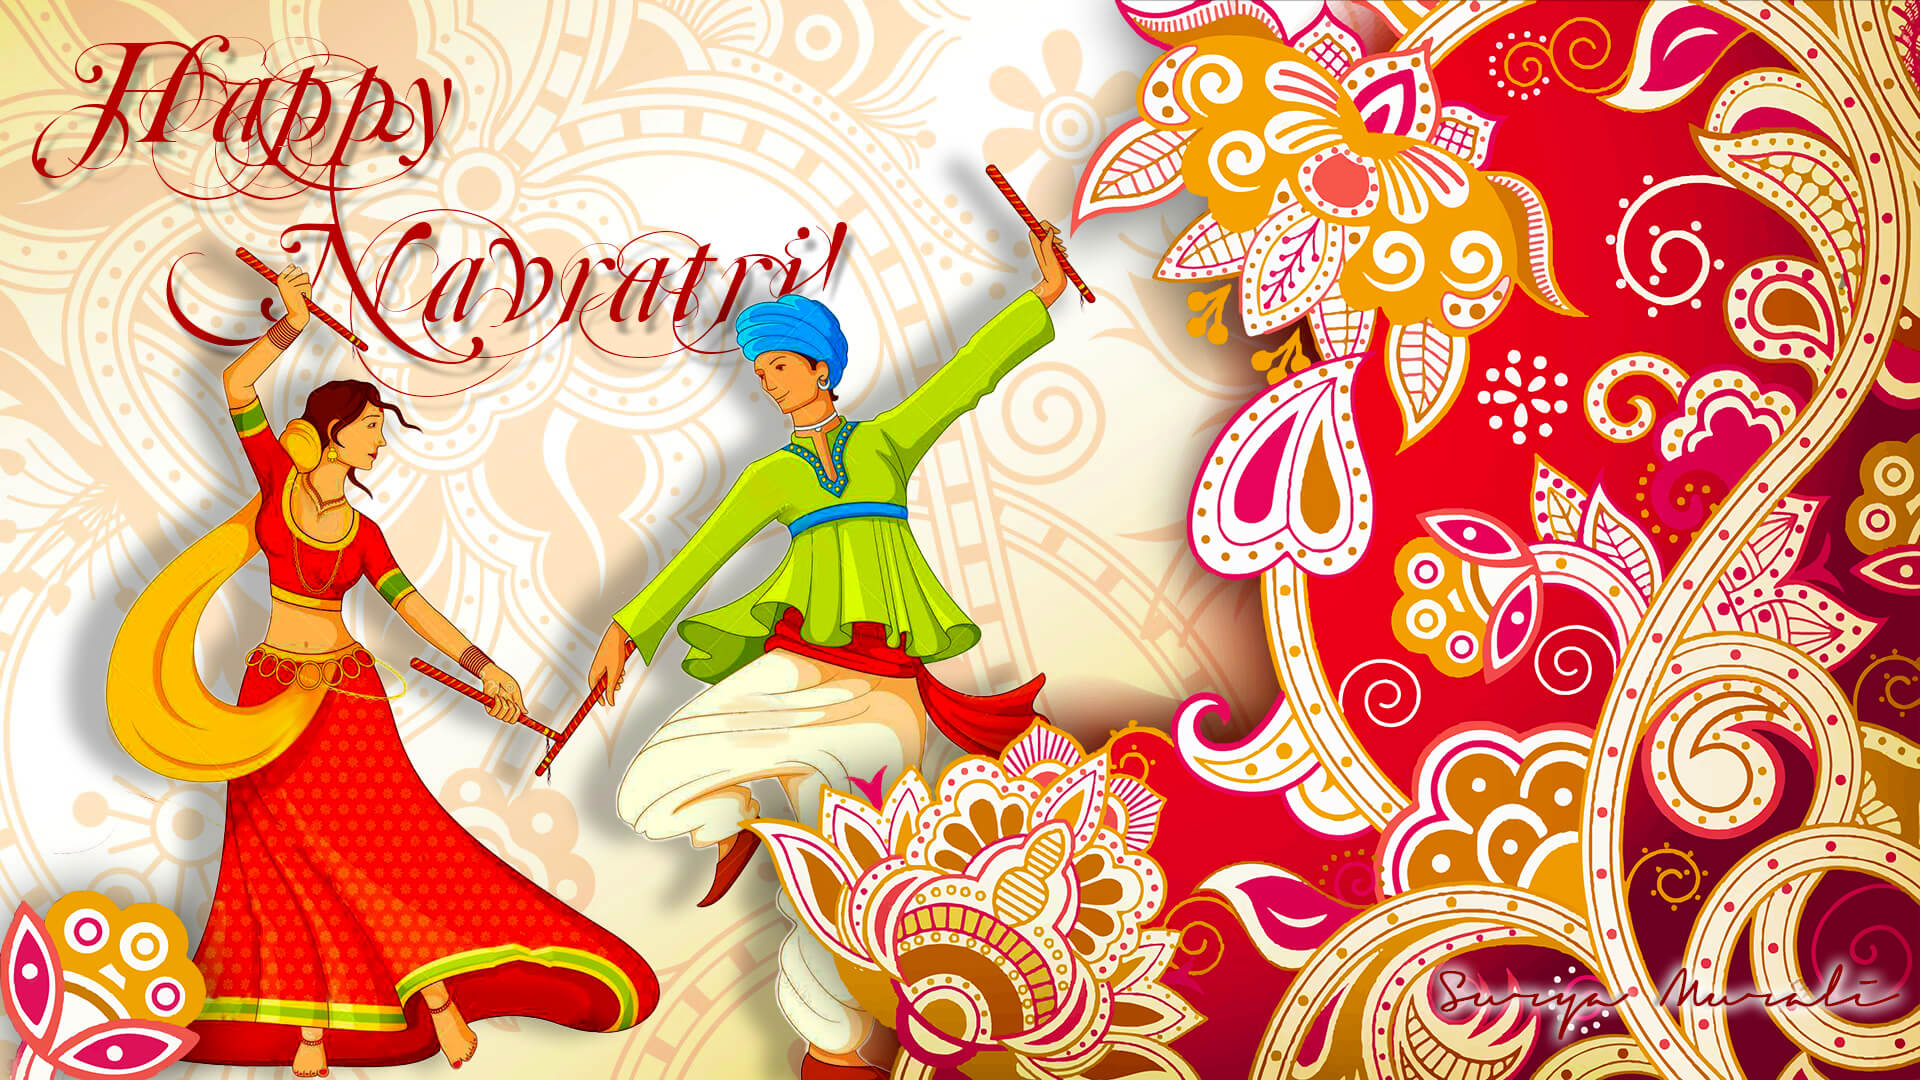 happy navratri HD greeting card wallpaper image